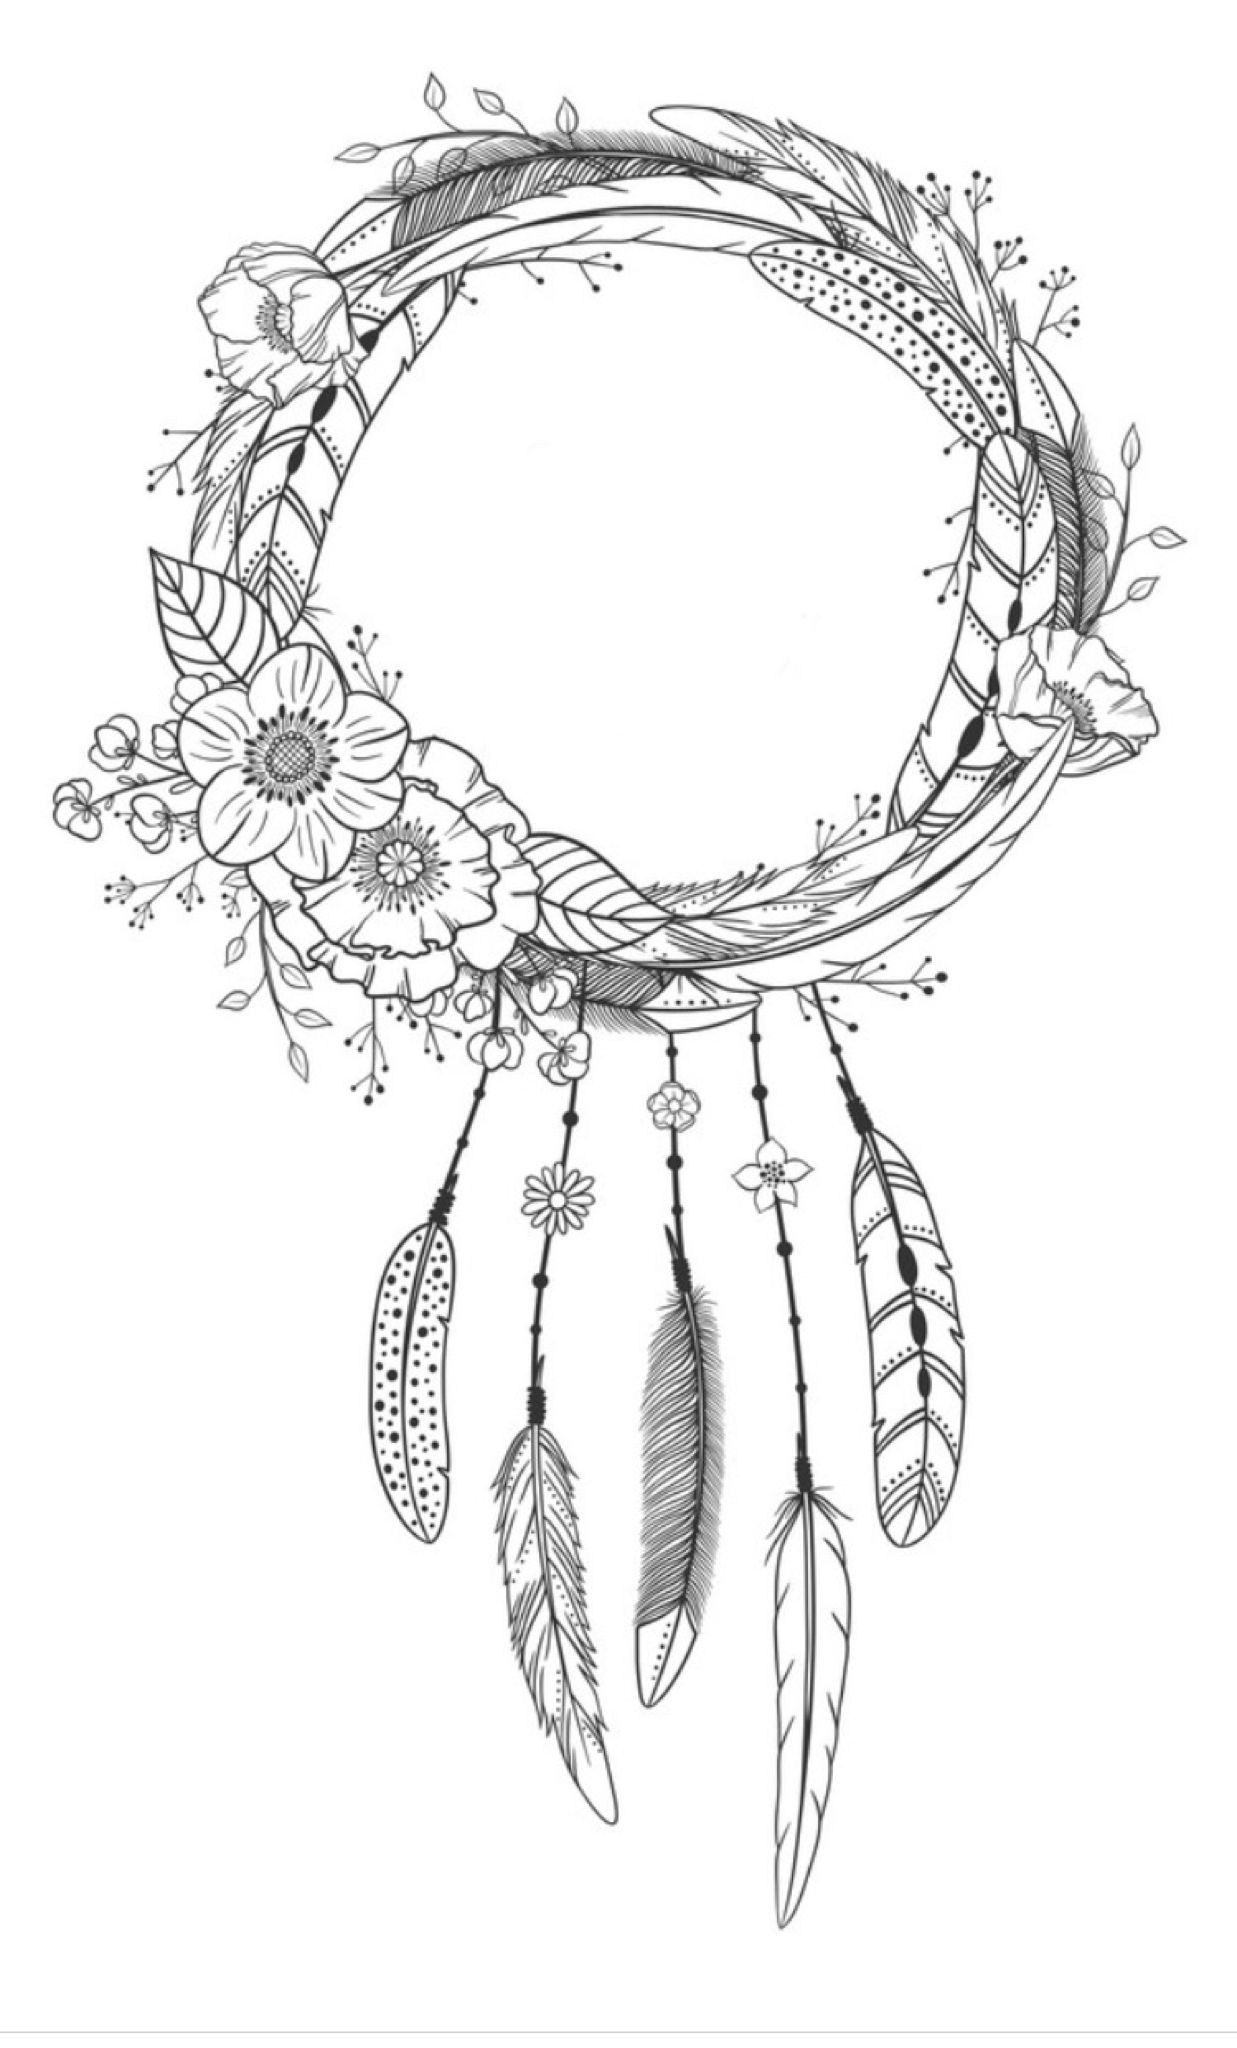 black and white dream catchers coloring pages | Dreamcatcher coloring page | Coloring pages for adults ...